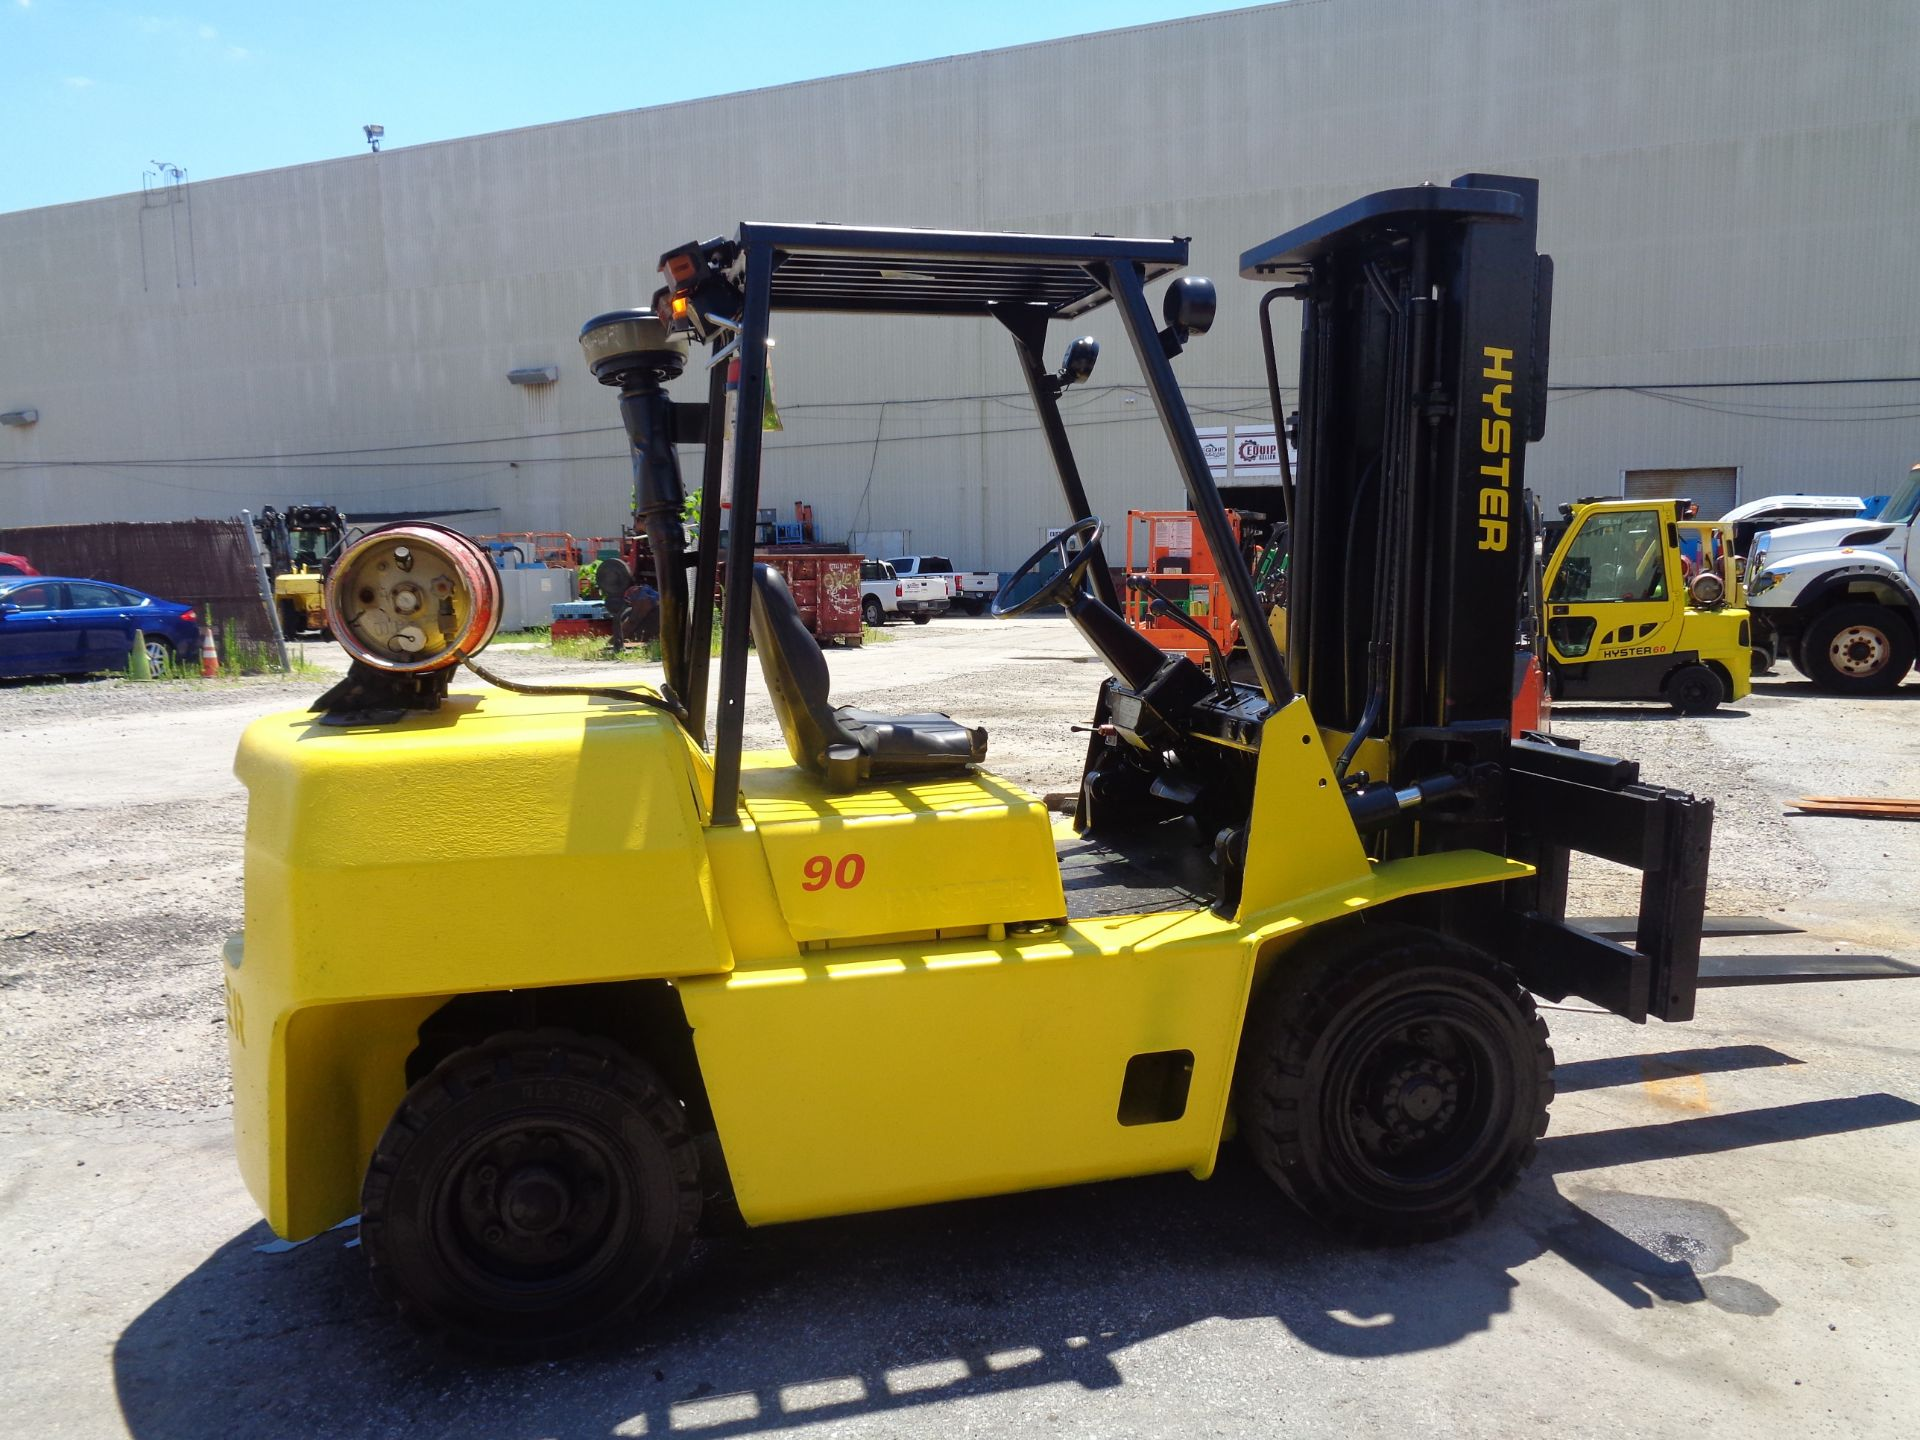 Hyster H90XLS Forklift 9,000 lbs - Image 4 of 13